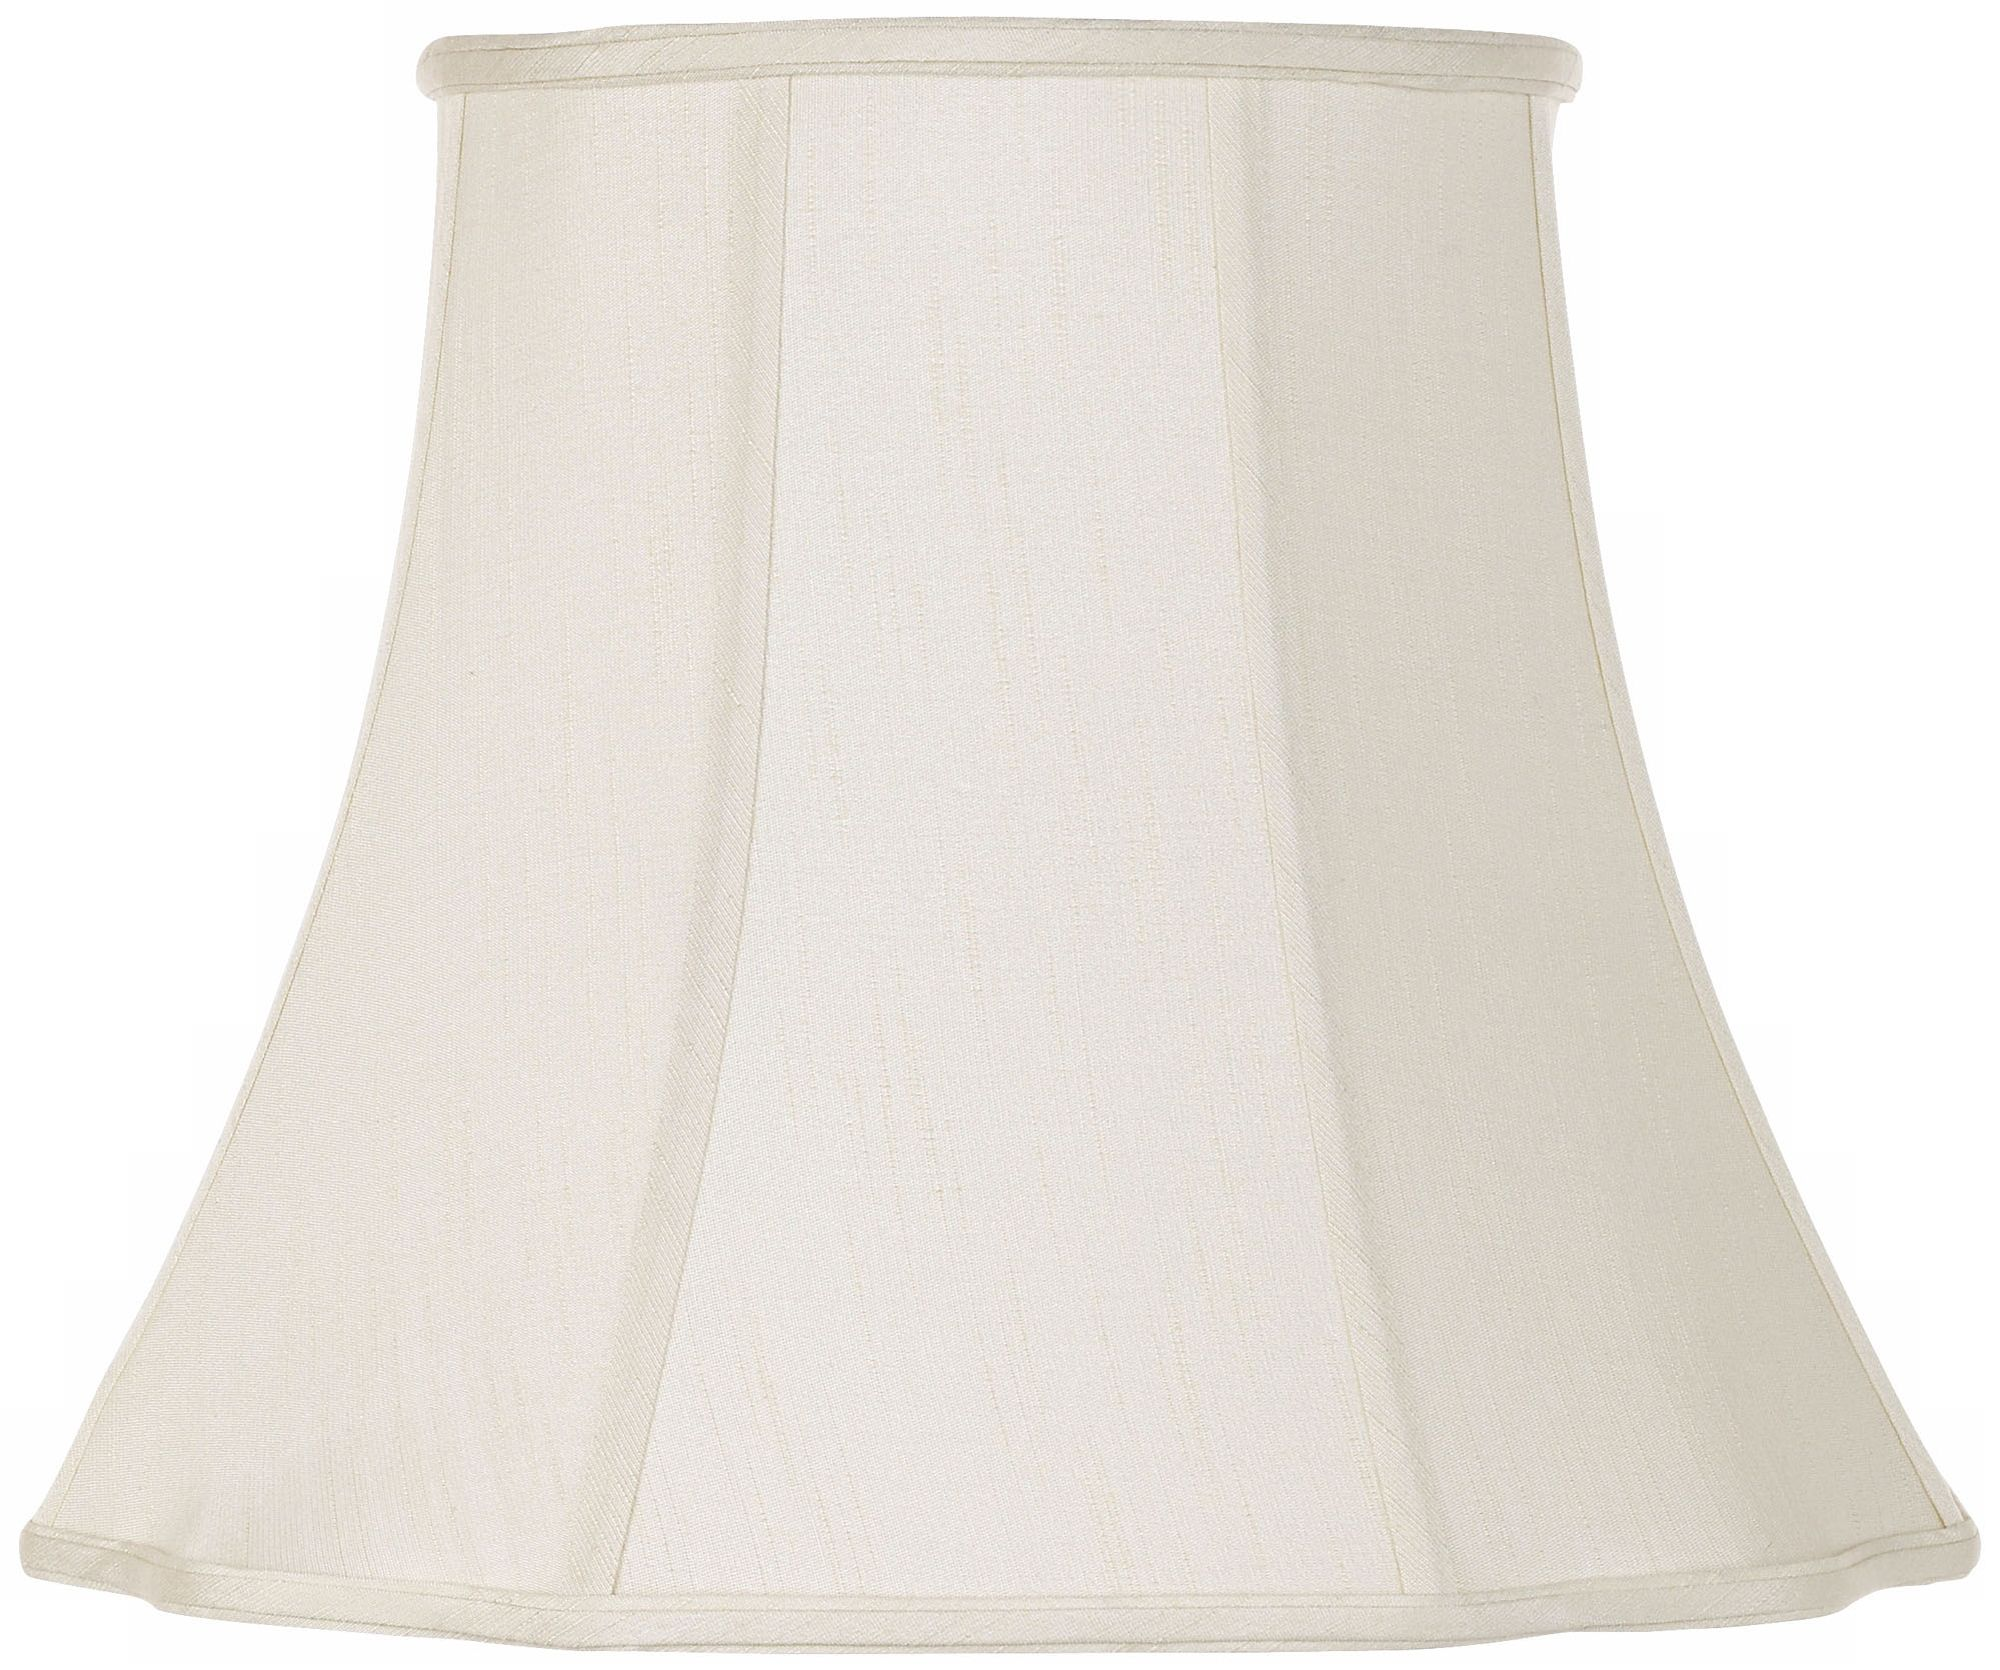 lamp shades creme bell curve cut corner lamp shade 11x18x15 (spider) PIAZRFF